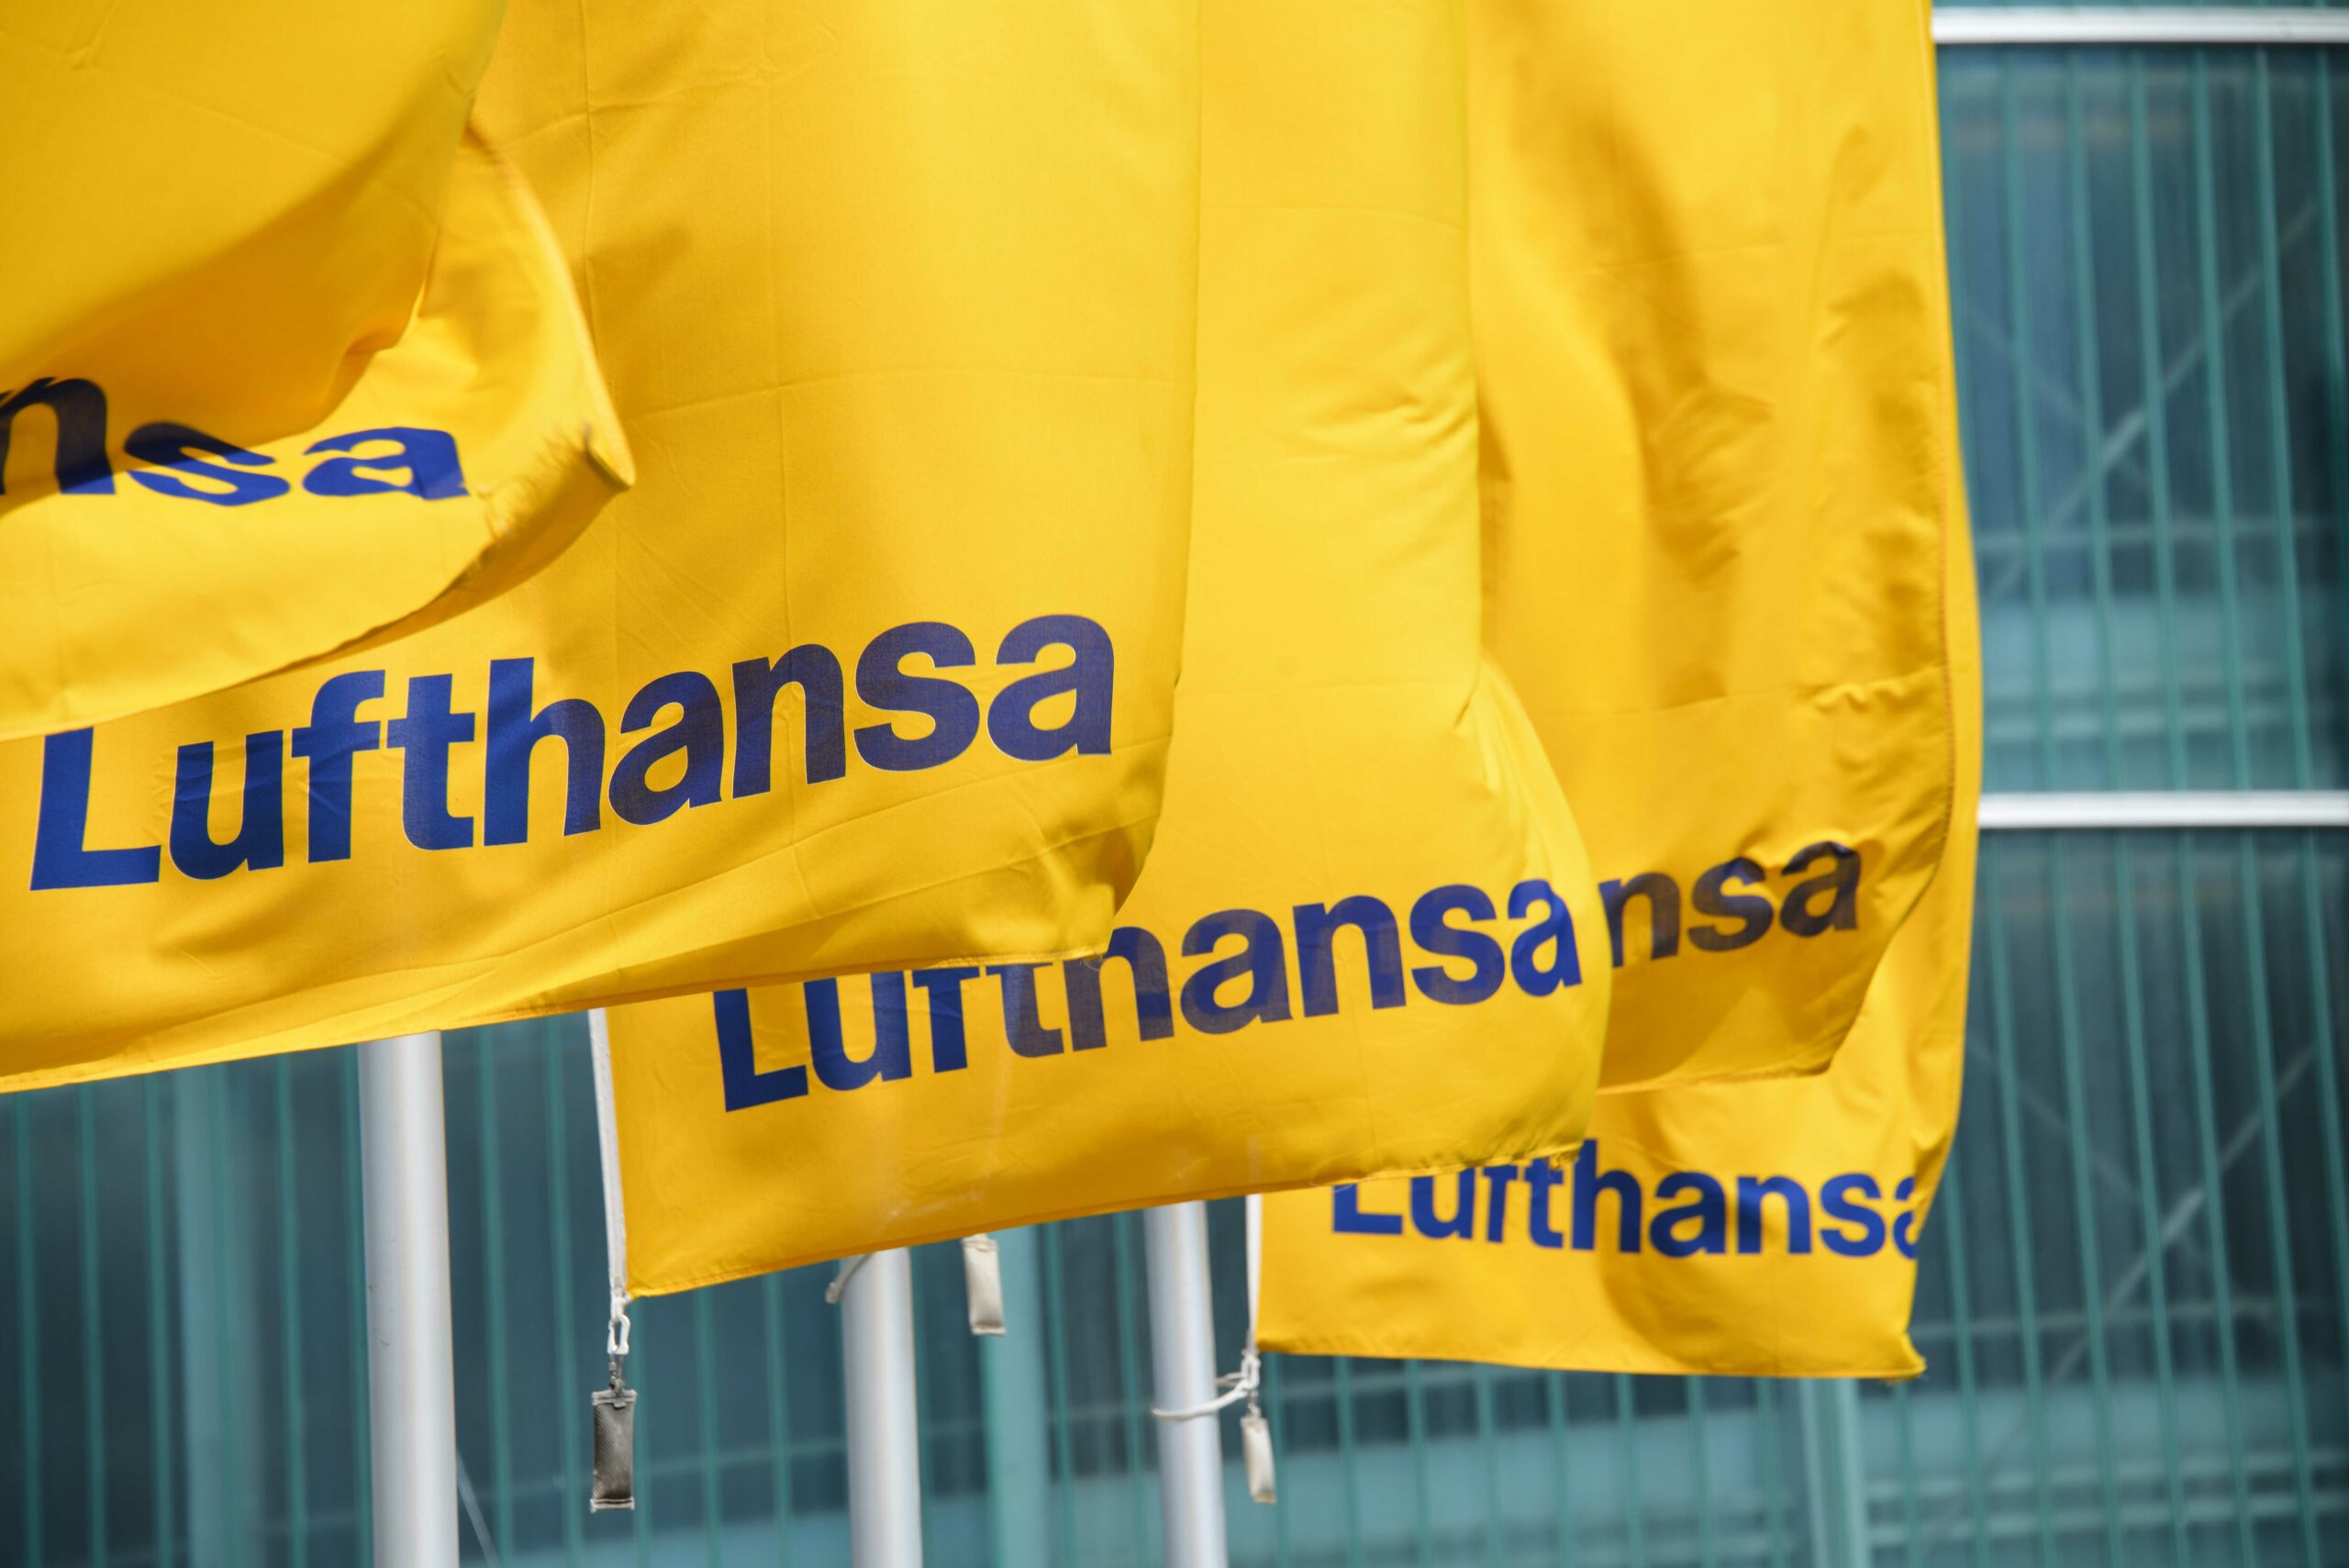 Lufthansa cutting more jobs as losses increase to $ 500 million per month. 1